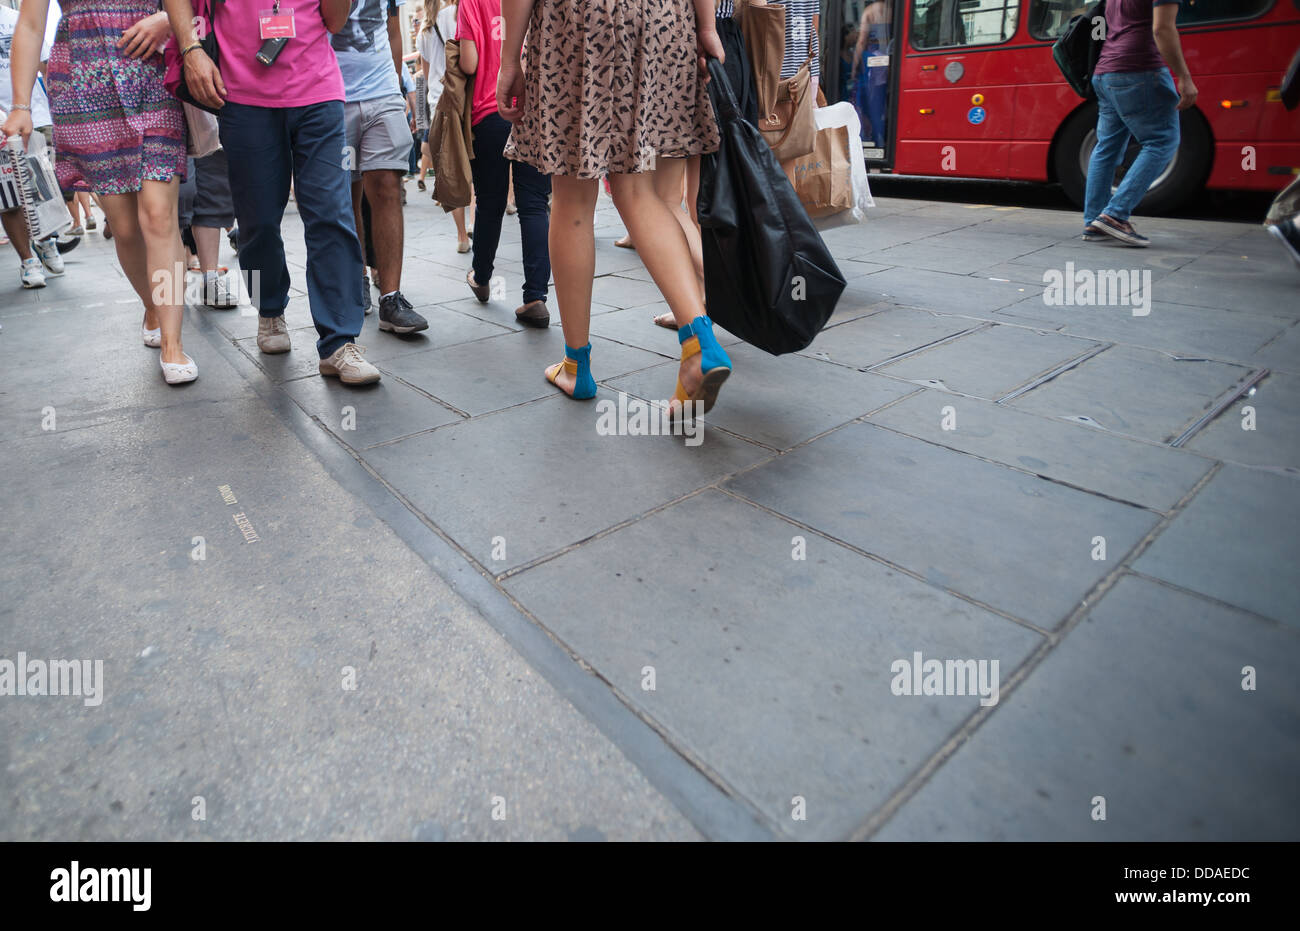 Busy London street as people walk by. No recognisable people or property. - Stock Image